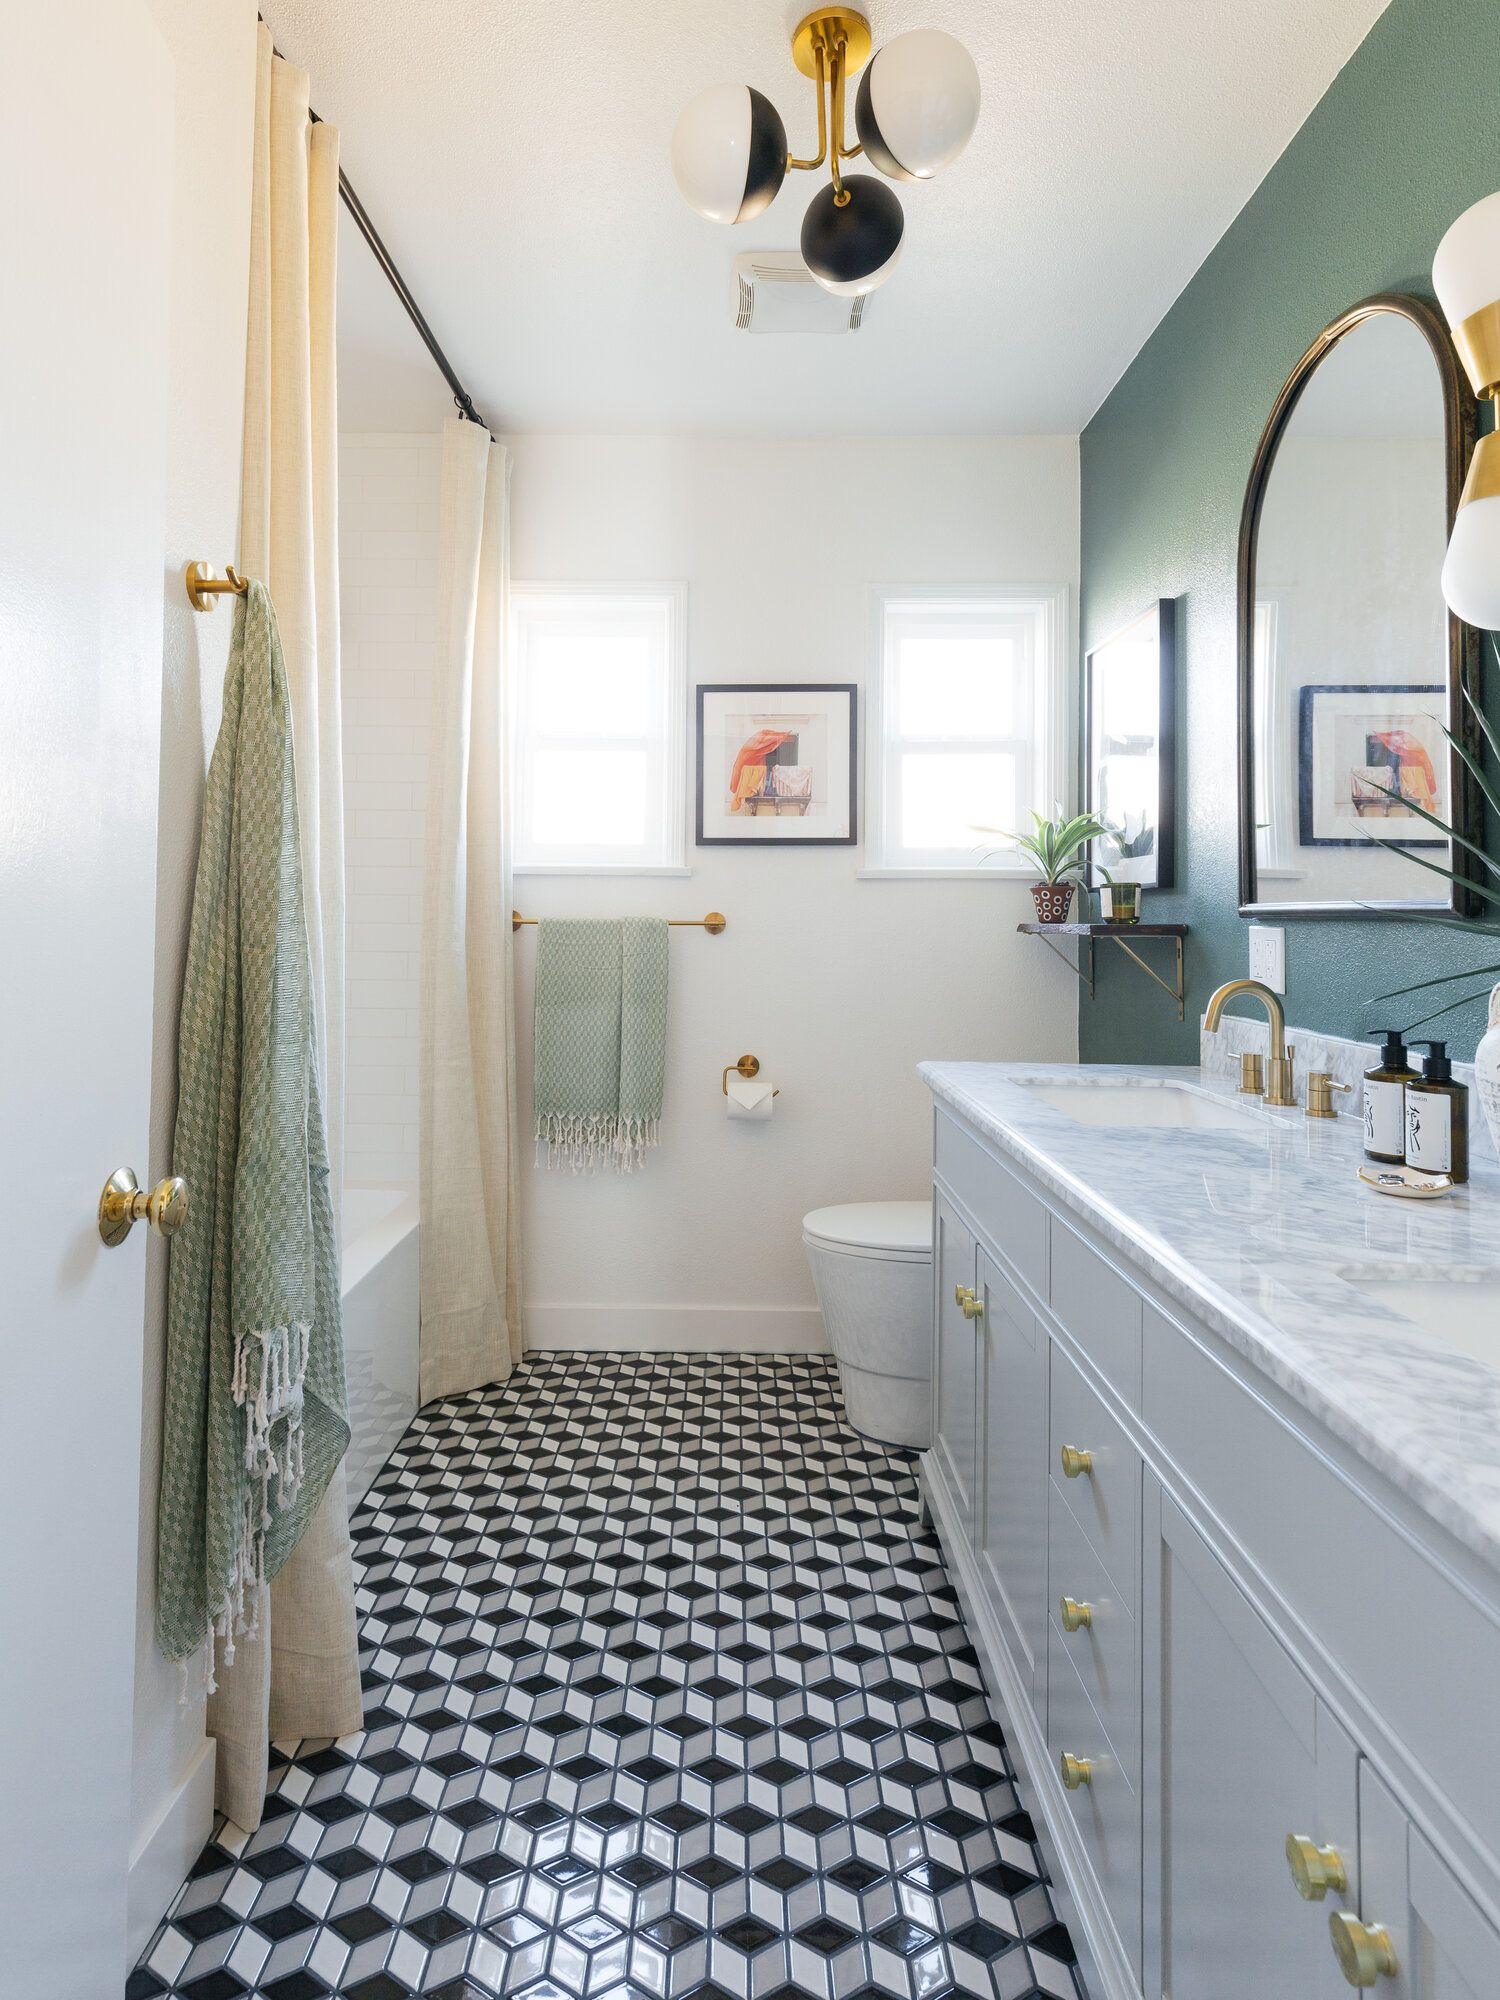 These 11 Stylish Bathroom Remodel Ideas Are Brilliant